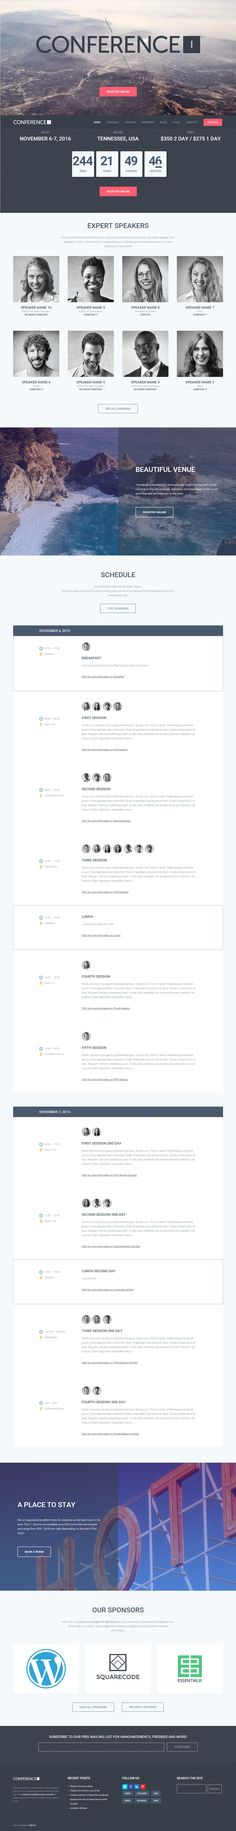 Conference, as it's name suggests, was created from the start to be the easiest, quickest and most robust #conference WordPress theme available. We designed our conference theme and free plugins to be simple to use, intuitive and powerful, and most importantly results orientated.#events #webinar #website